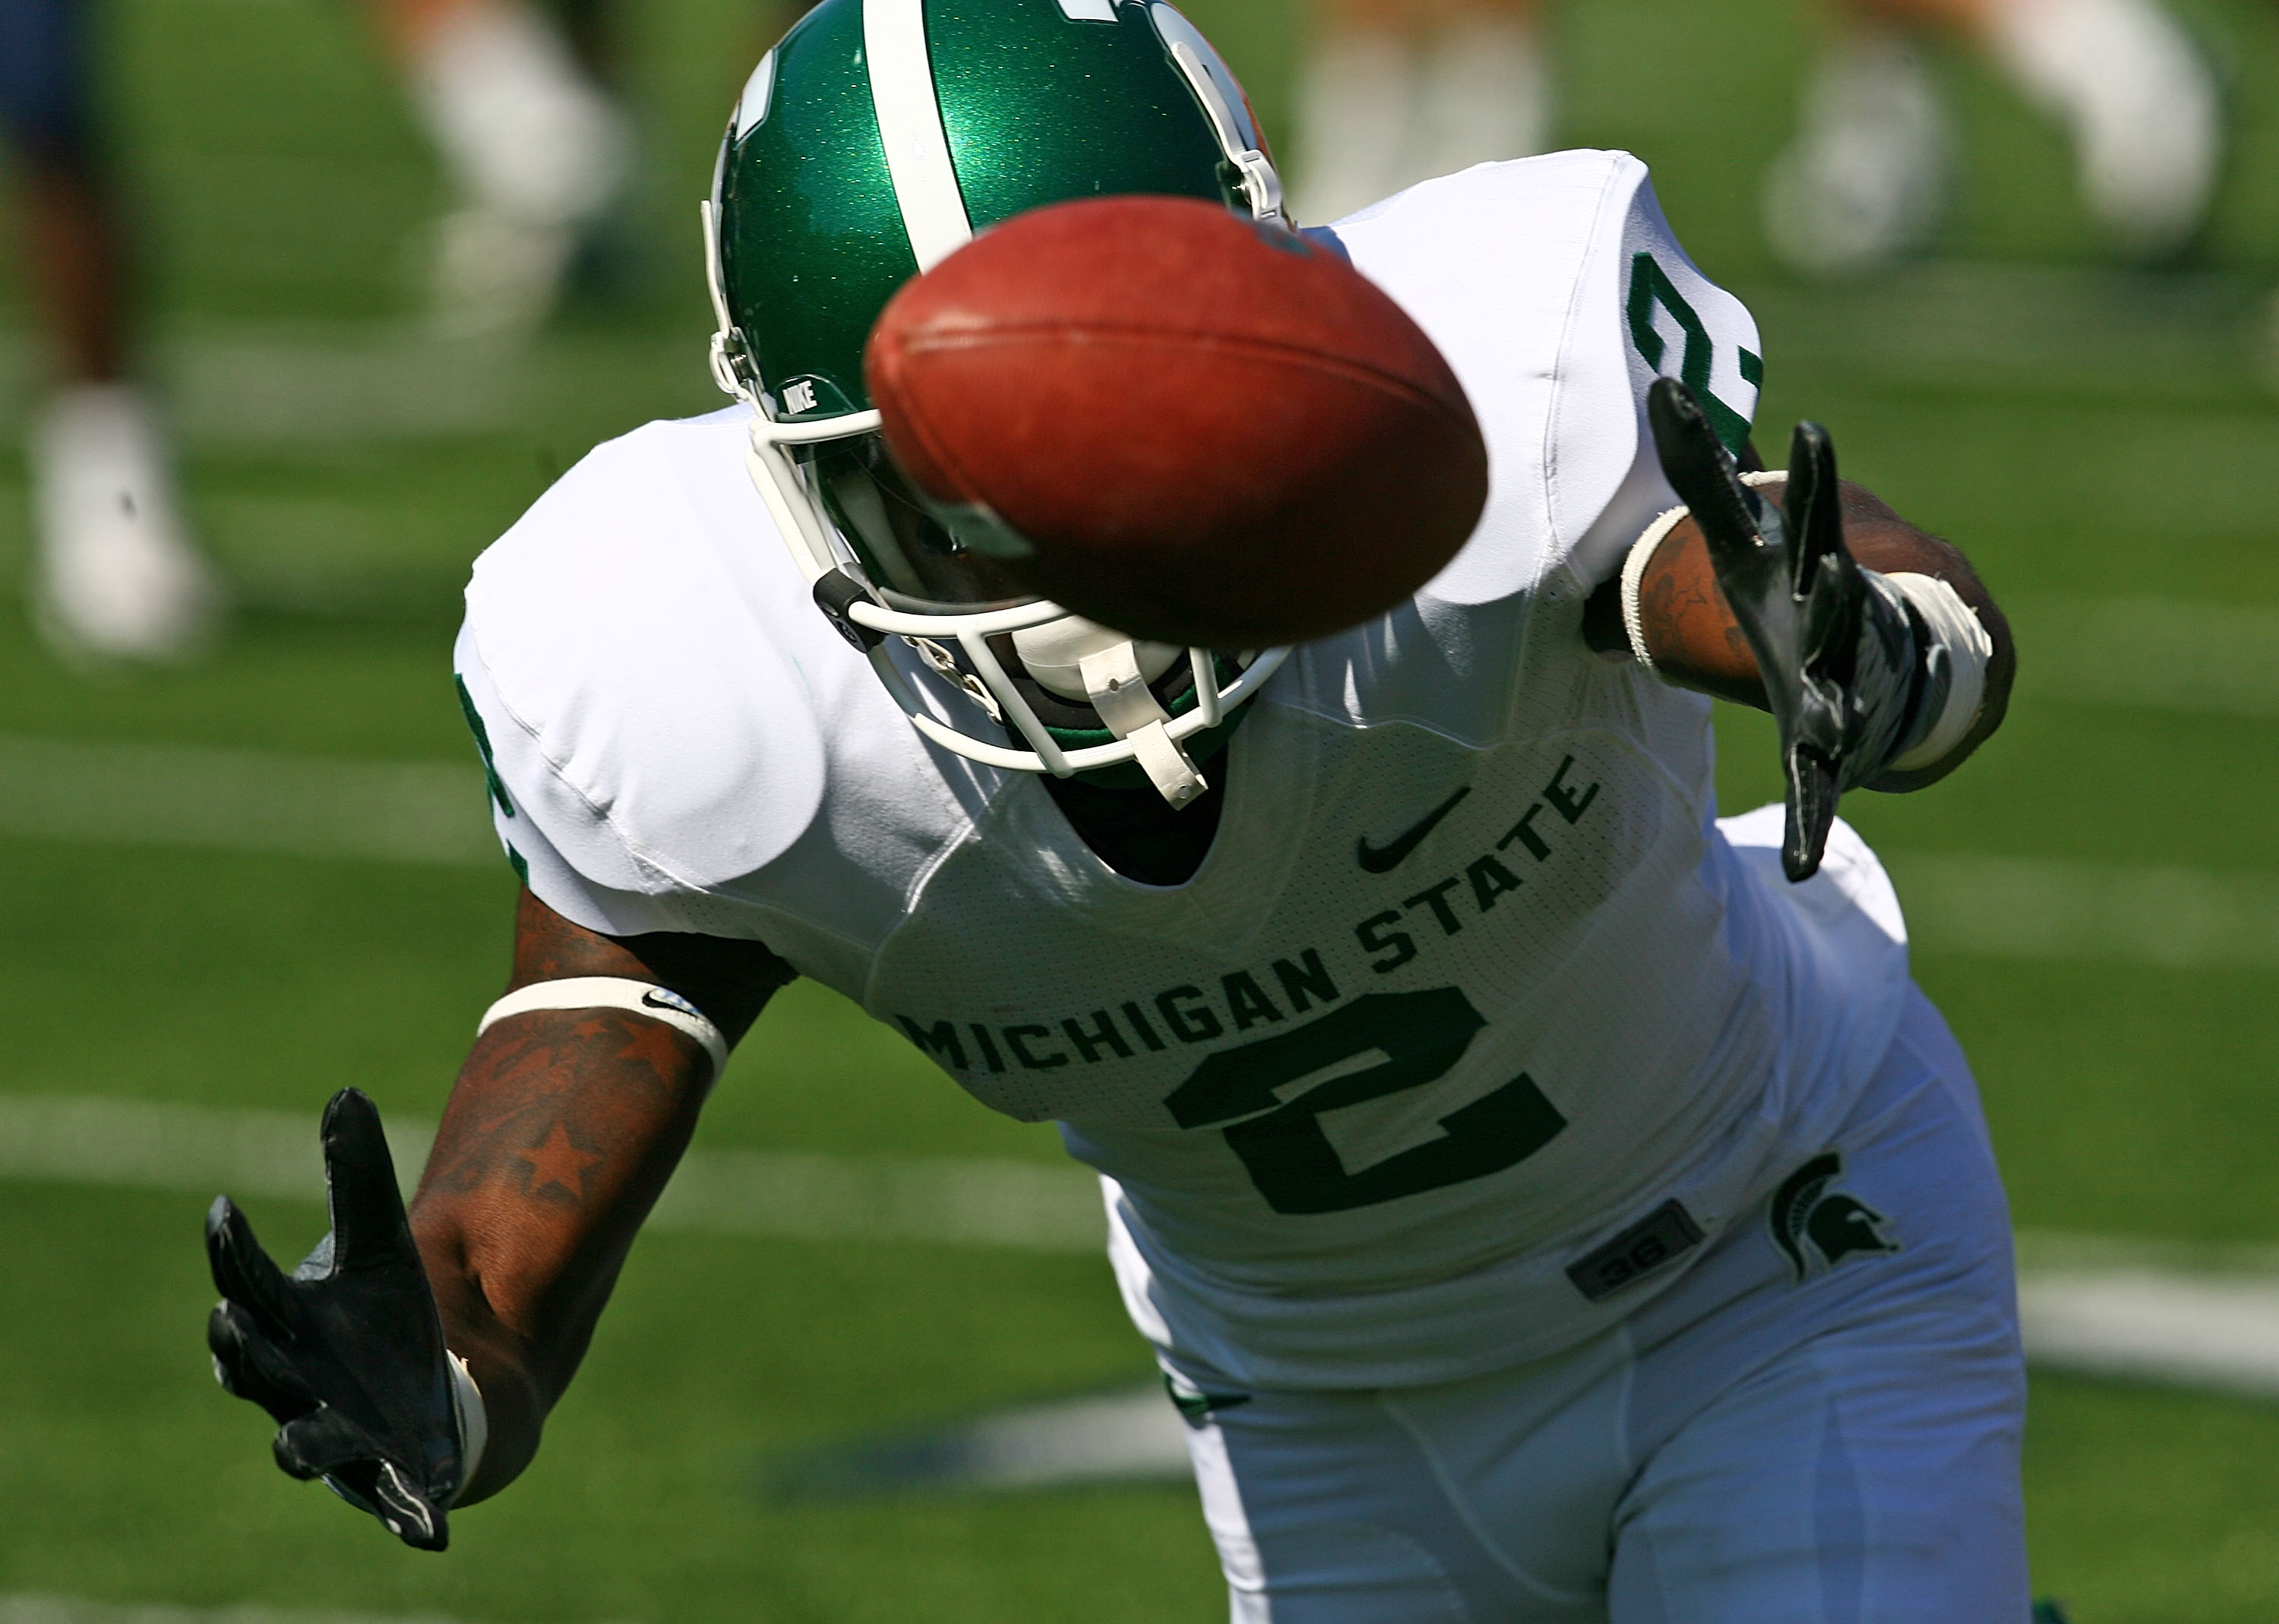 CHAMPAIGN, IL - OCTOBER 10: Mark Dell #2 of the Michigan State Spartans misses catching the ball against the Illinois Fighting Illini on October 10, 2009 at Memorial Stadium at the University of Illinois in Champaign, Illinois. Michigan State defeated Ill